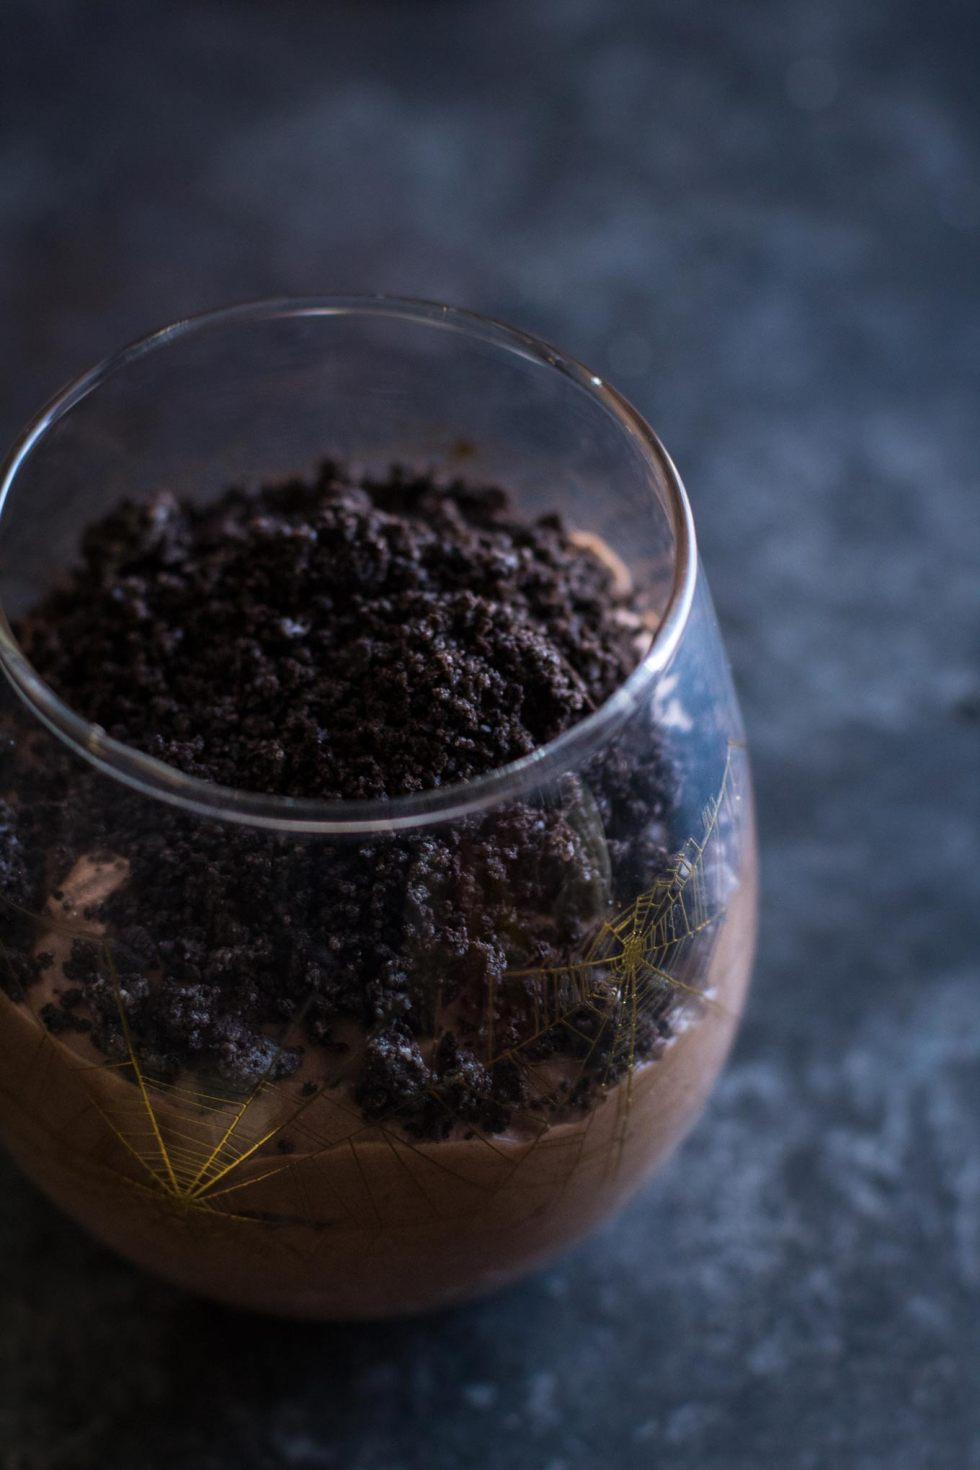 Closeup of oreo cookie topping on top of graveyard chocolate mousse